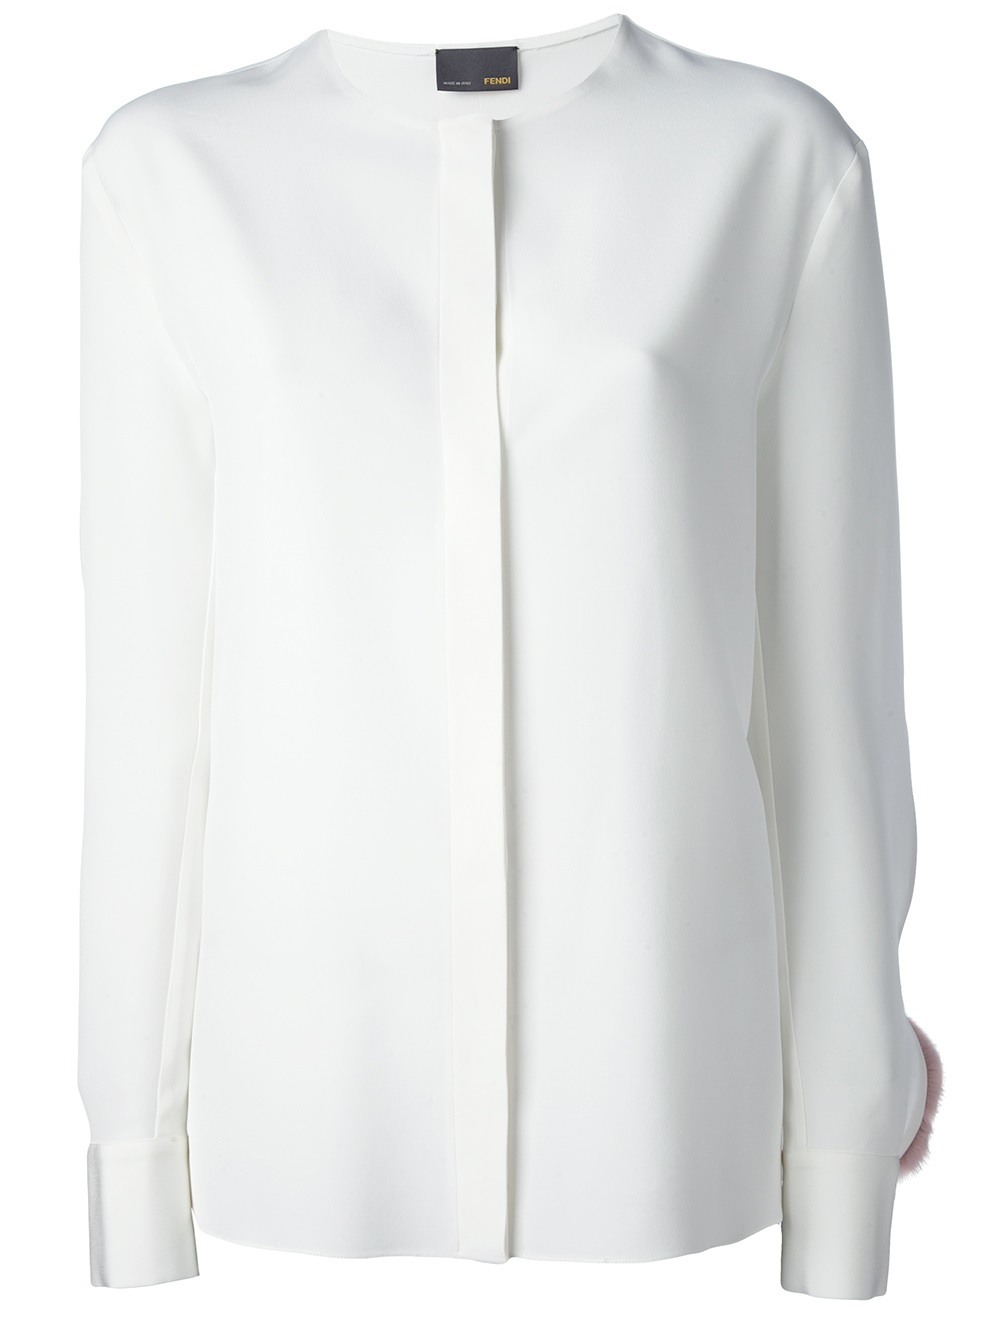 Fendi Fur Trim Blouse in White | Lyst